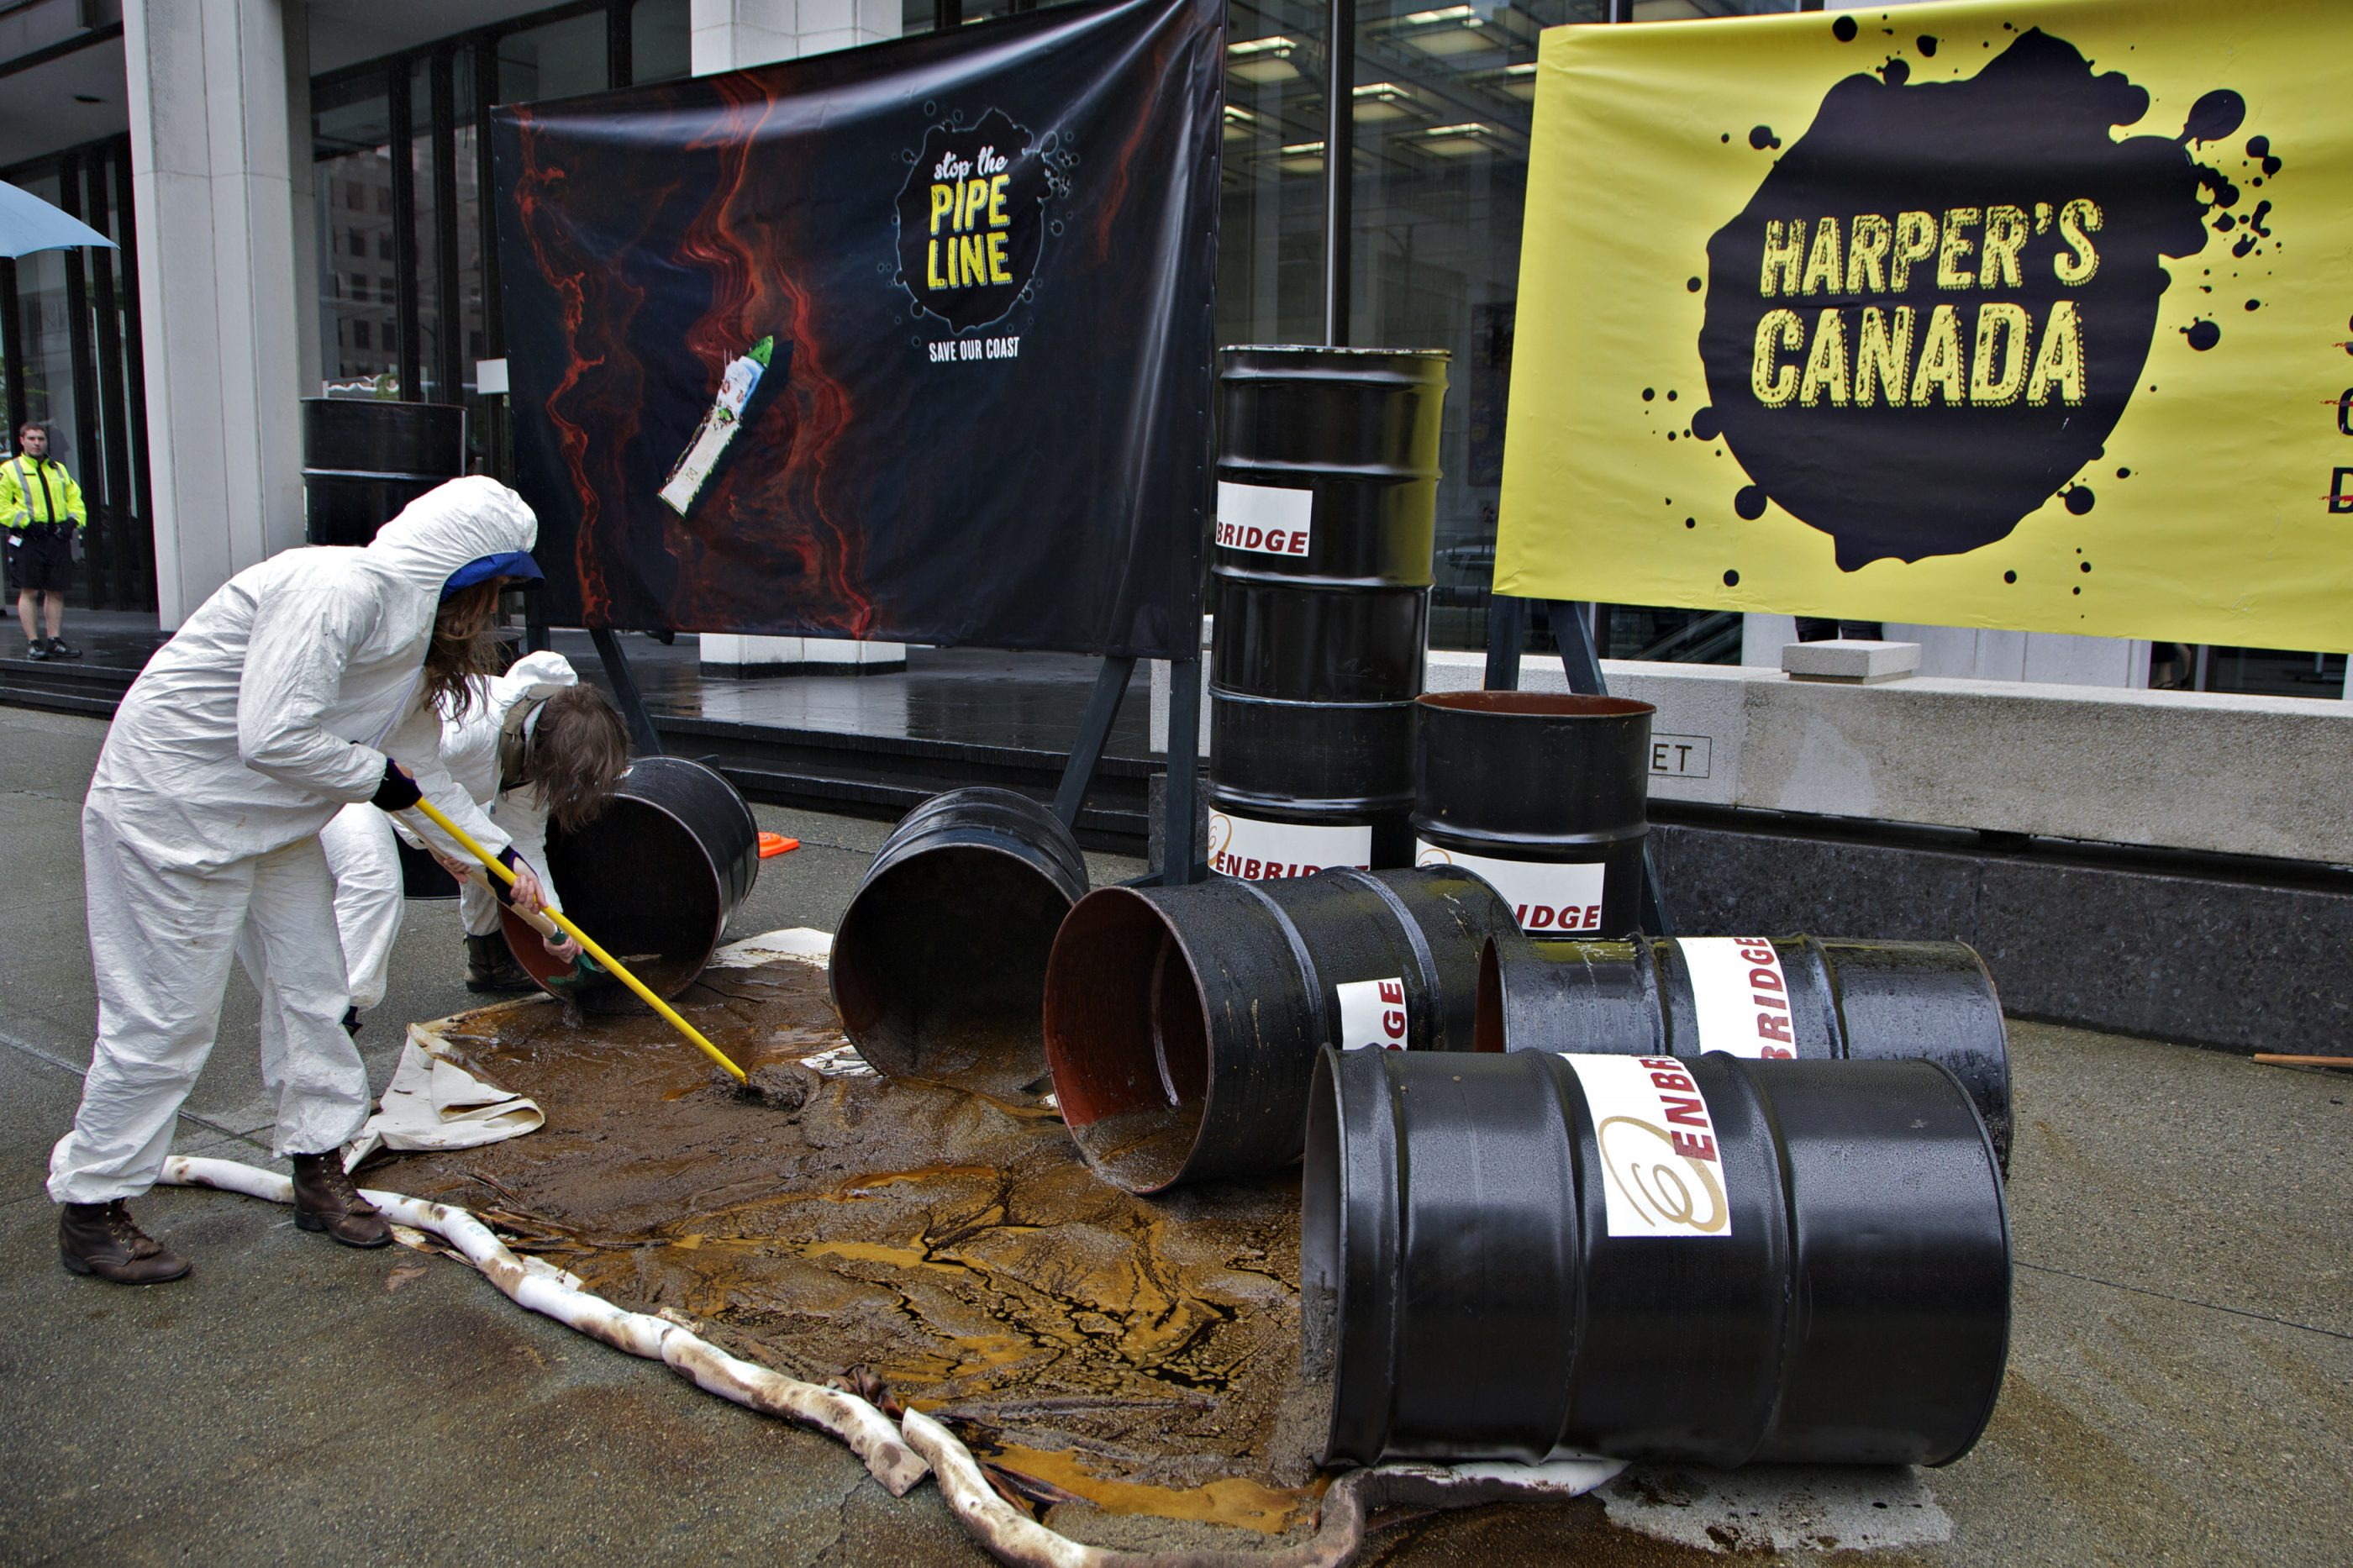 Canada S Carbon Makeover C2c Journal